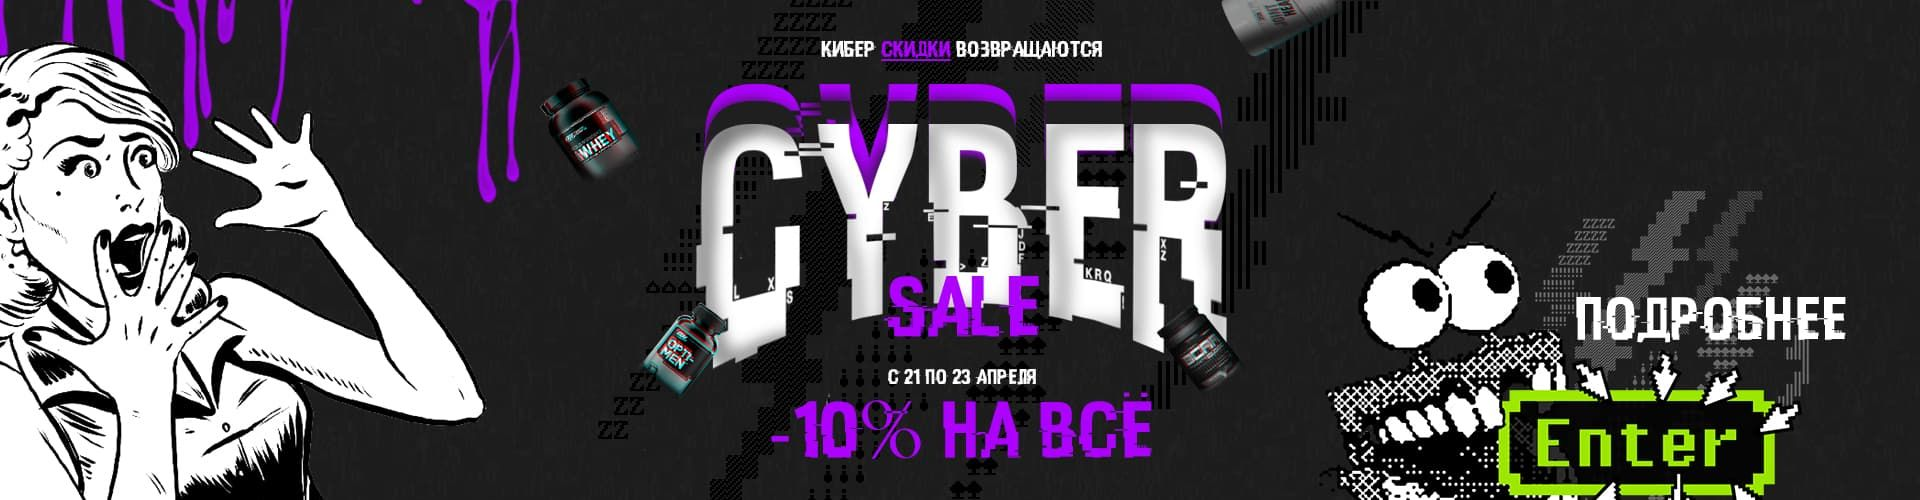 Cyber discounts